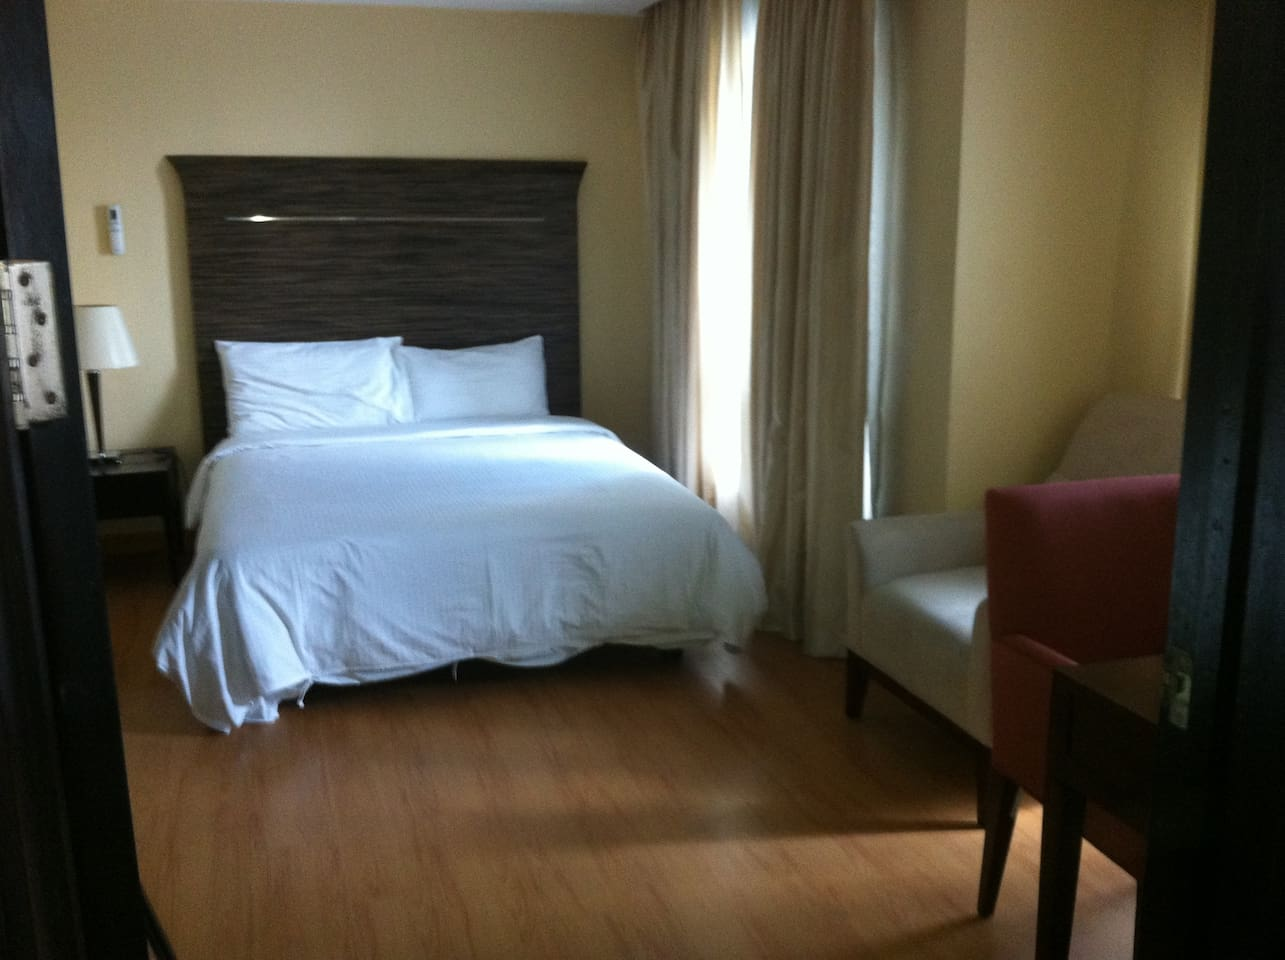 Crib for sale mandaluyong - Lancaster Suites Apartments For Rent In Mandaluyong City Metro Manila Philippines